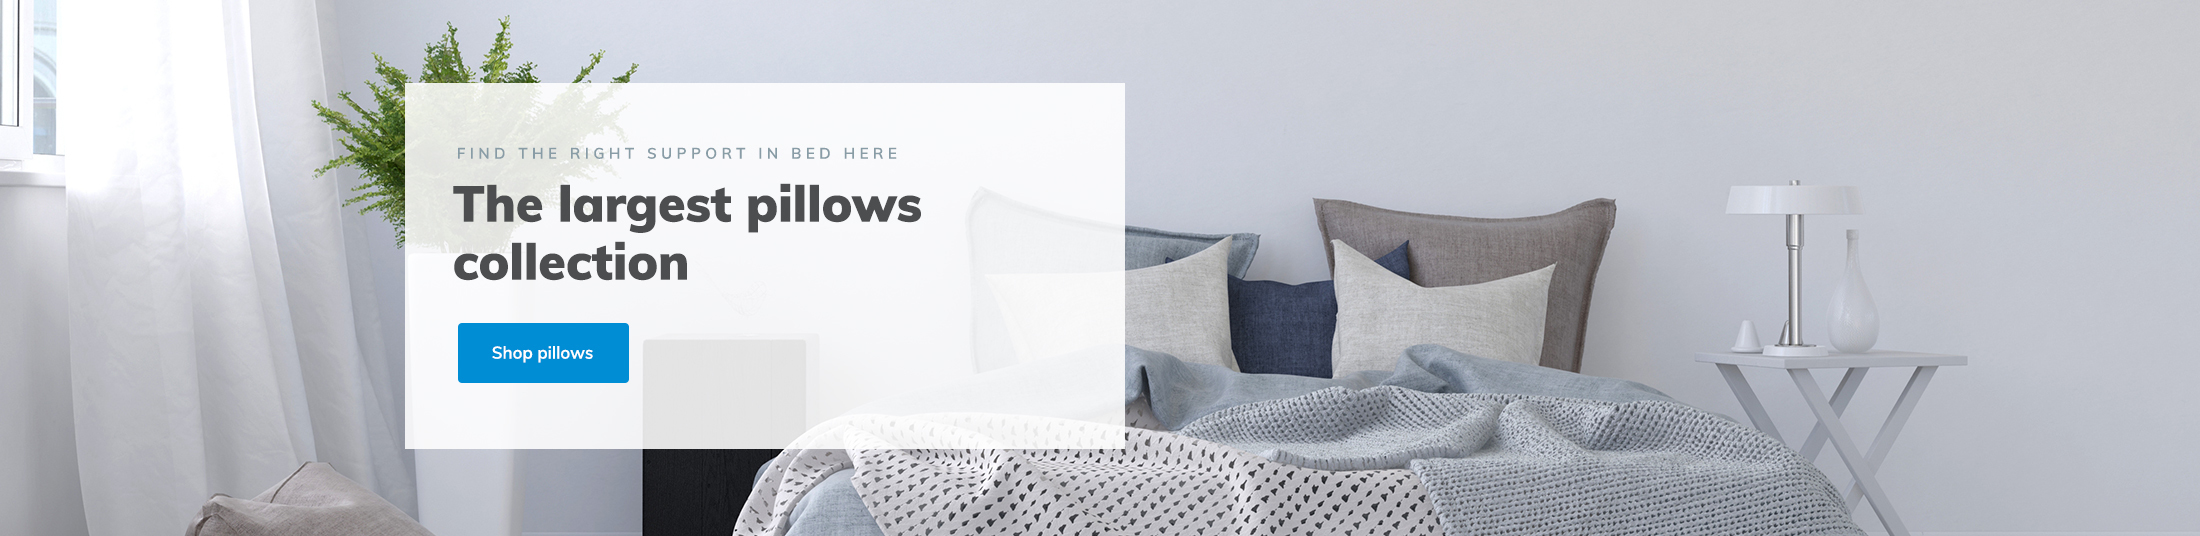 pillows online - kussens